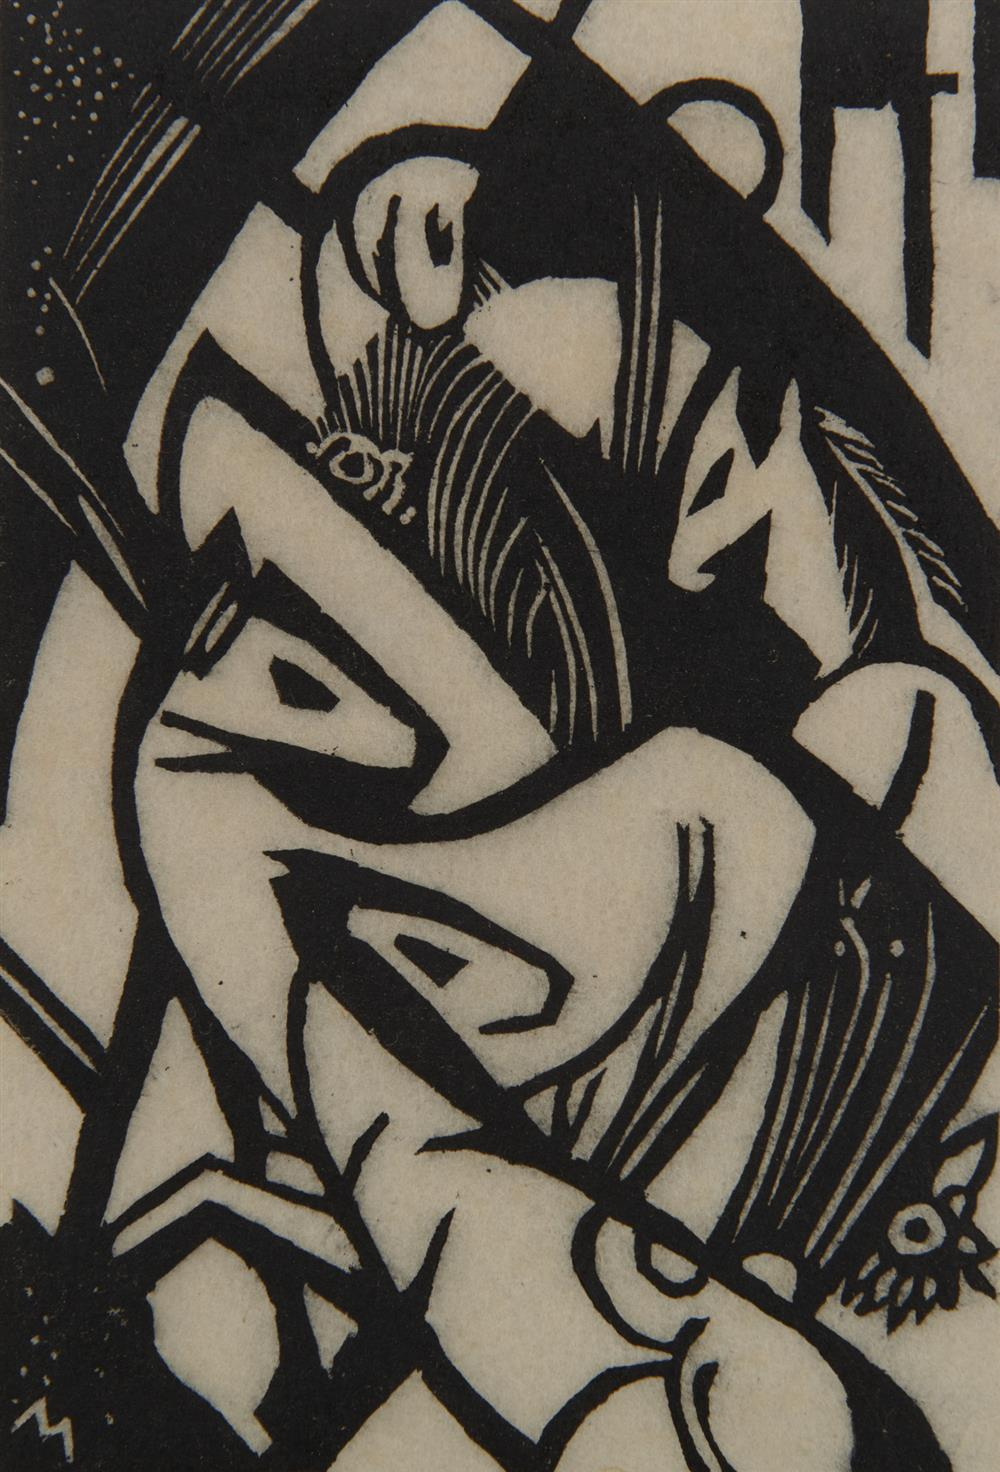 FRANZ MARC, (German, 1880-1916), Springende Pferdchen (Small Leaping Horses), woodcut, 5 1/4 x 3 1/2 in.